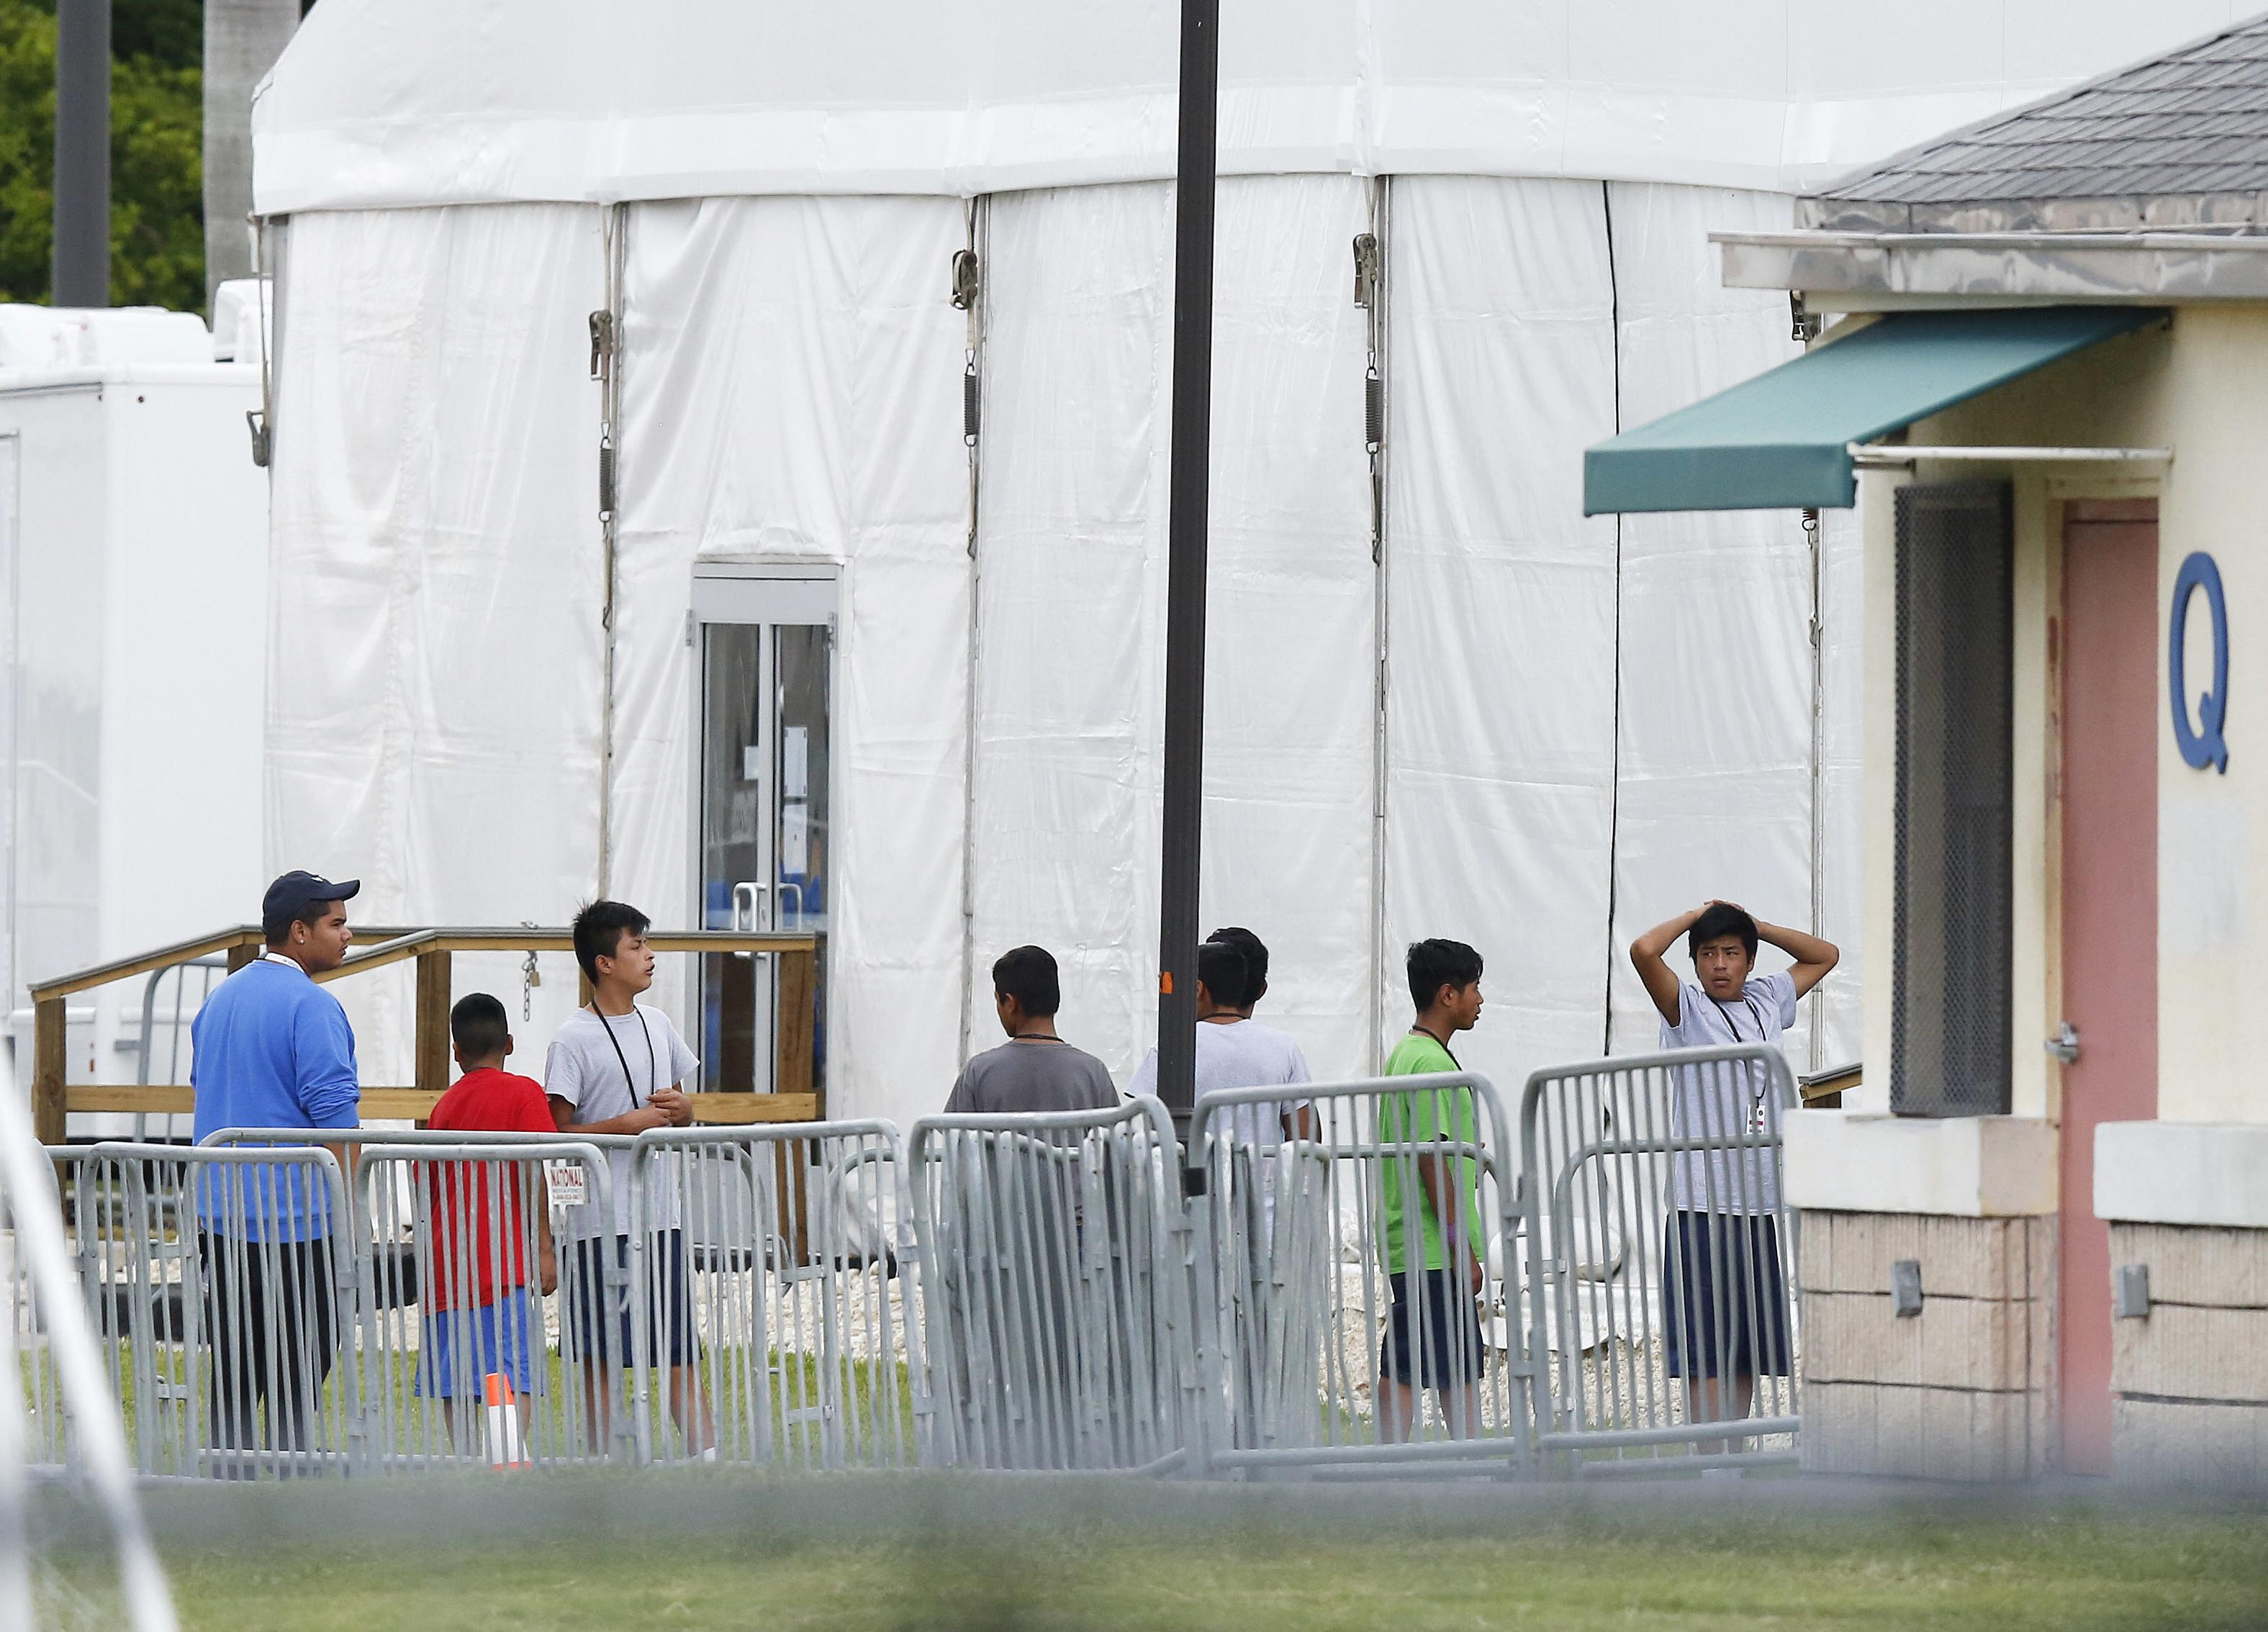 The Spokesman-Review Newspaper                                                        The Spokesman-Review                            U.S. wants 2 years to ID migrant kids separated from familiesMasked gunman killed in shootout at Dallas courthouse